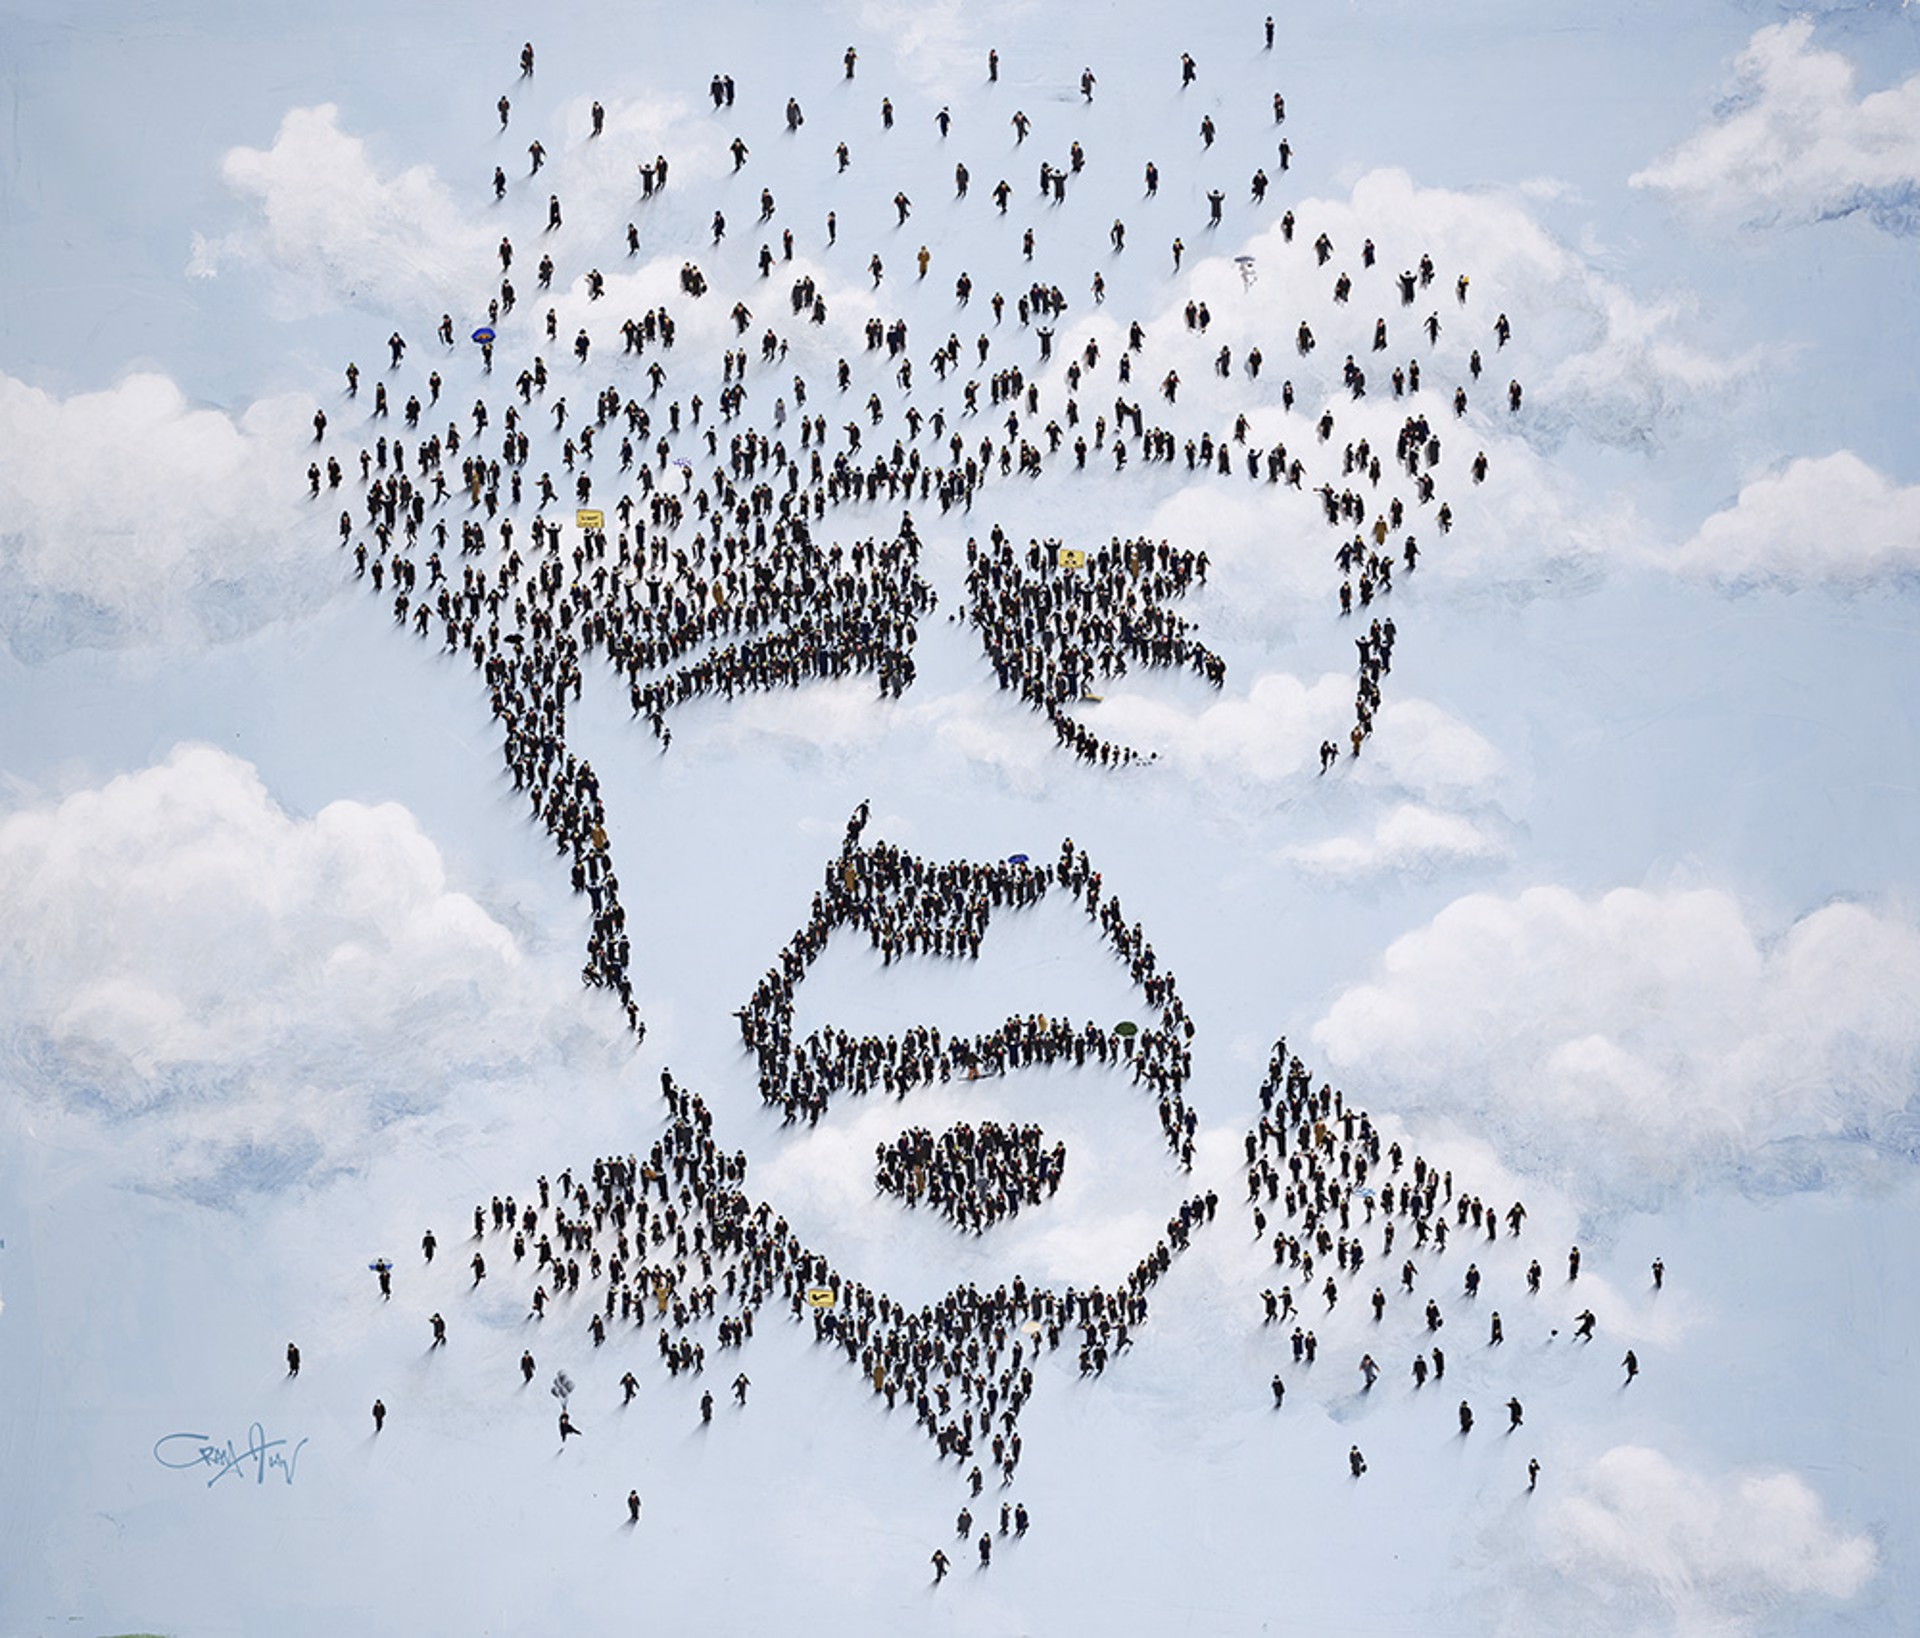 Magritte by Craig Alan, Populus Homage